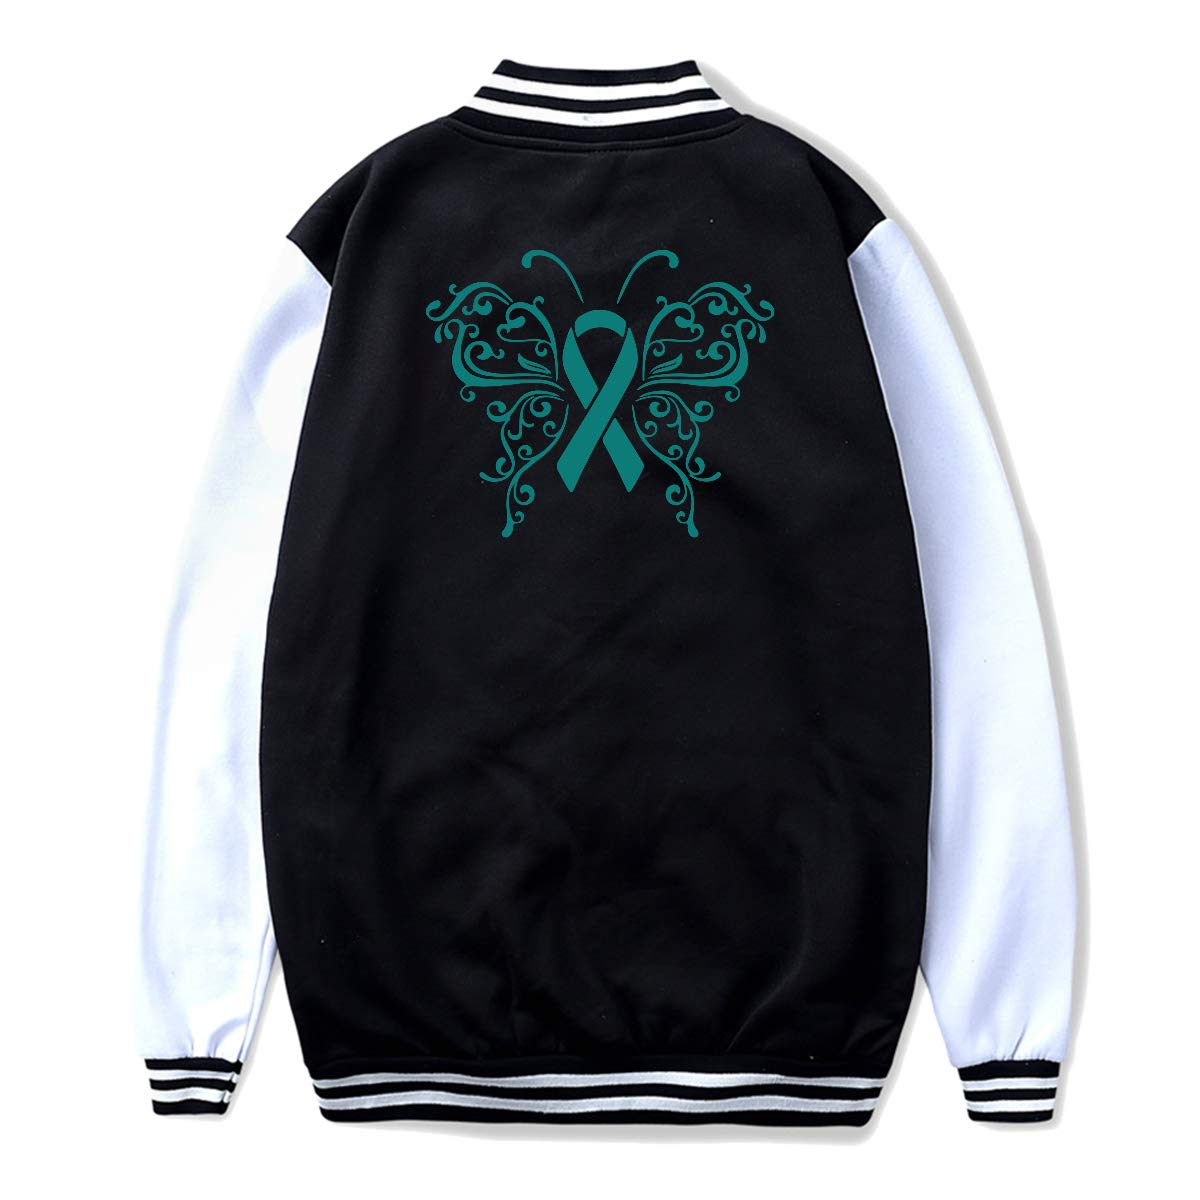 Unisex Youth Baseball Uniform Jacket Ribbon Butterfly Ovarian Cancer Coat Sport Outfit Back Print